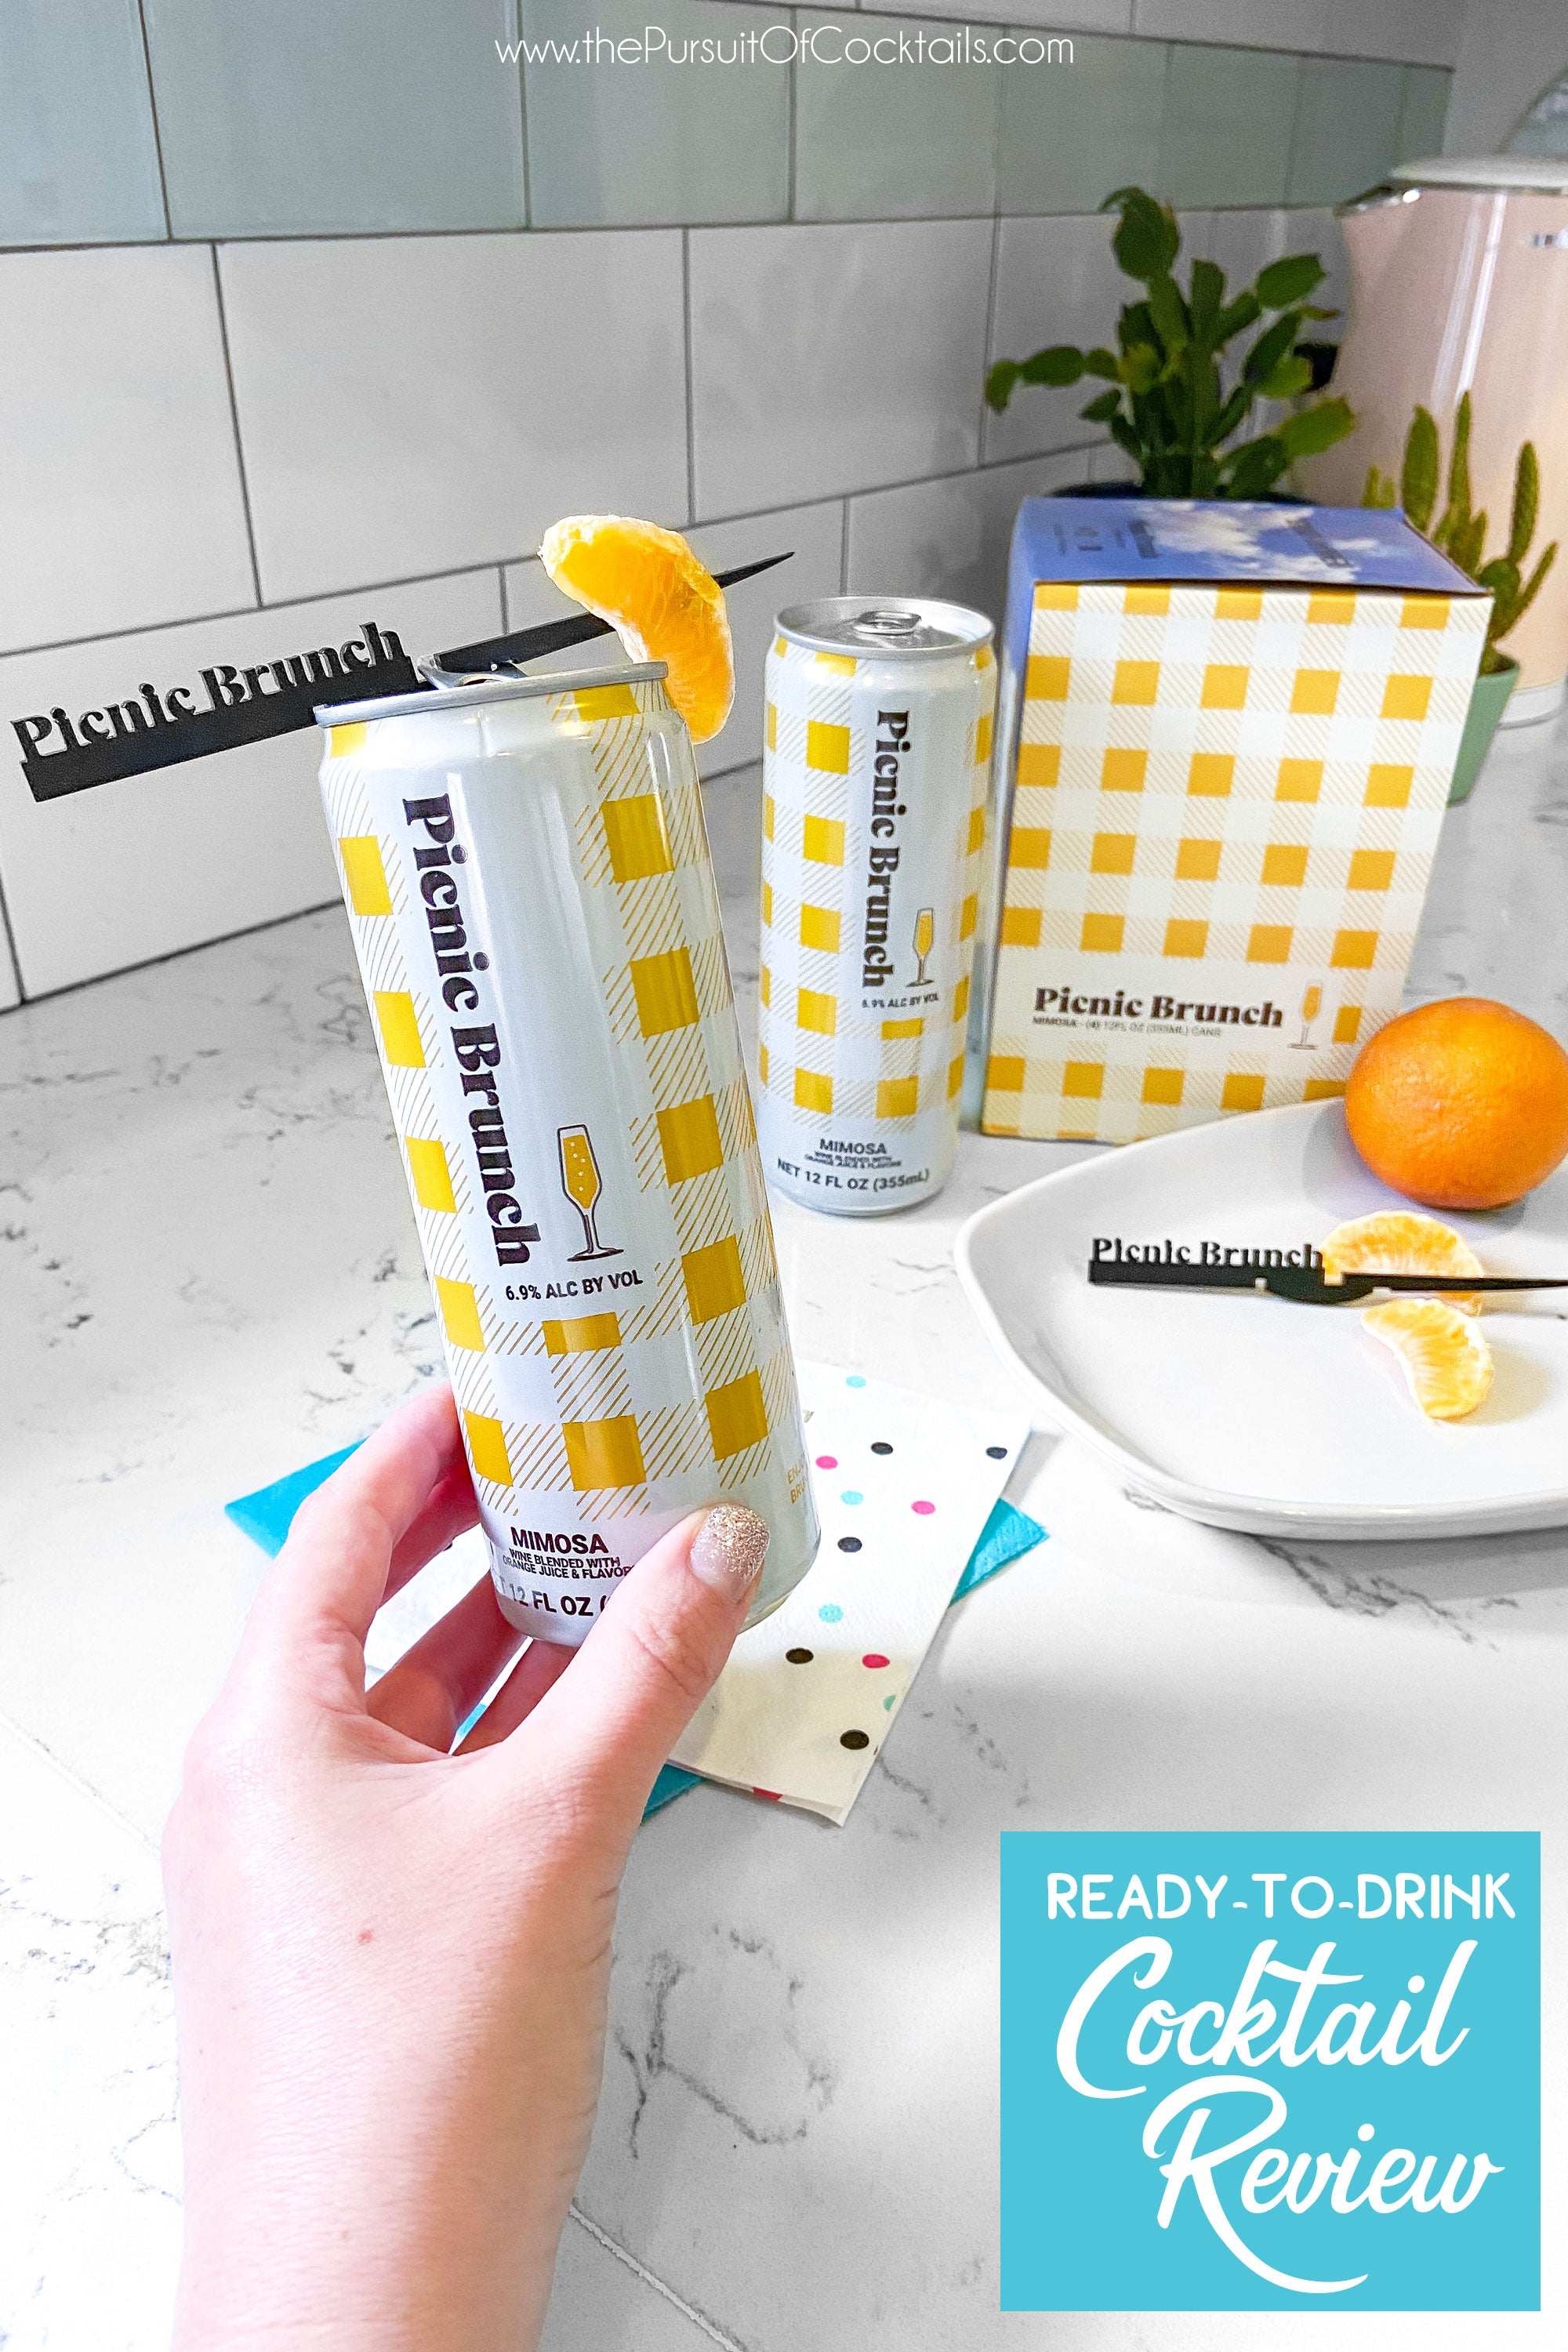 Picnic Brunch mimosa canned cocktail review by The Pursuit of Cocktails